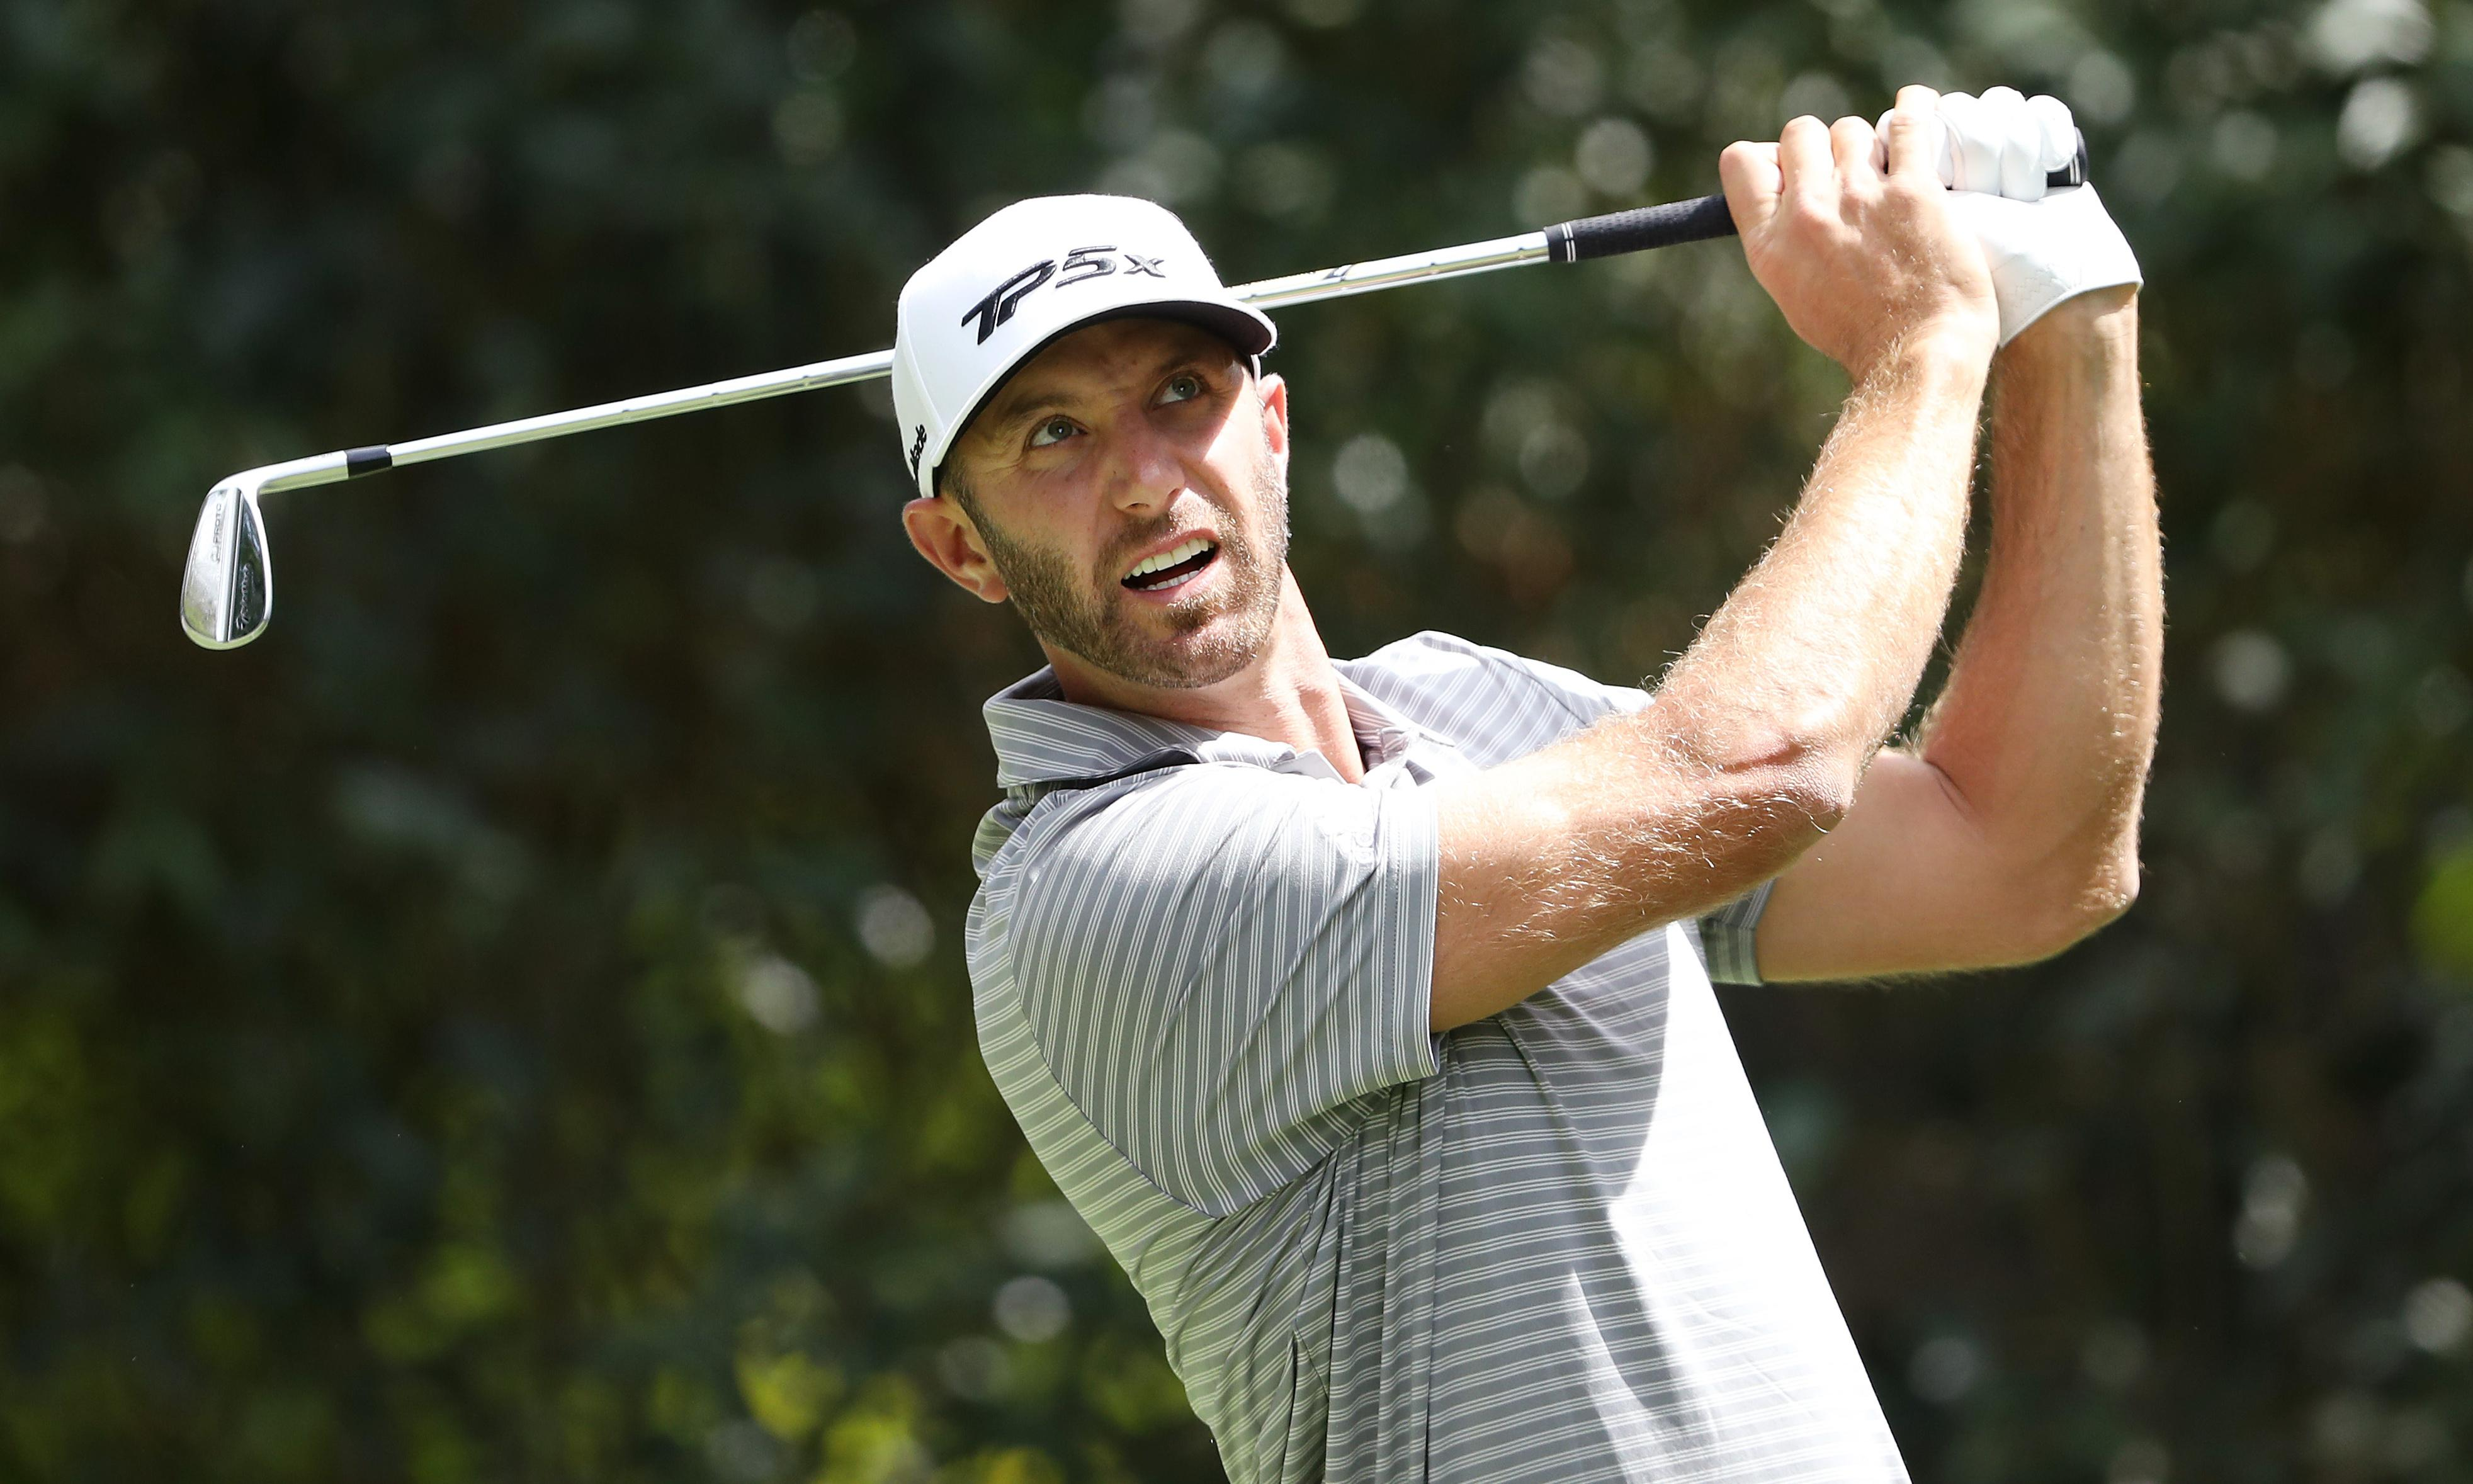 Dustin Johnson takes command as Rory McIlroy struggles on the greens